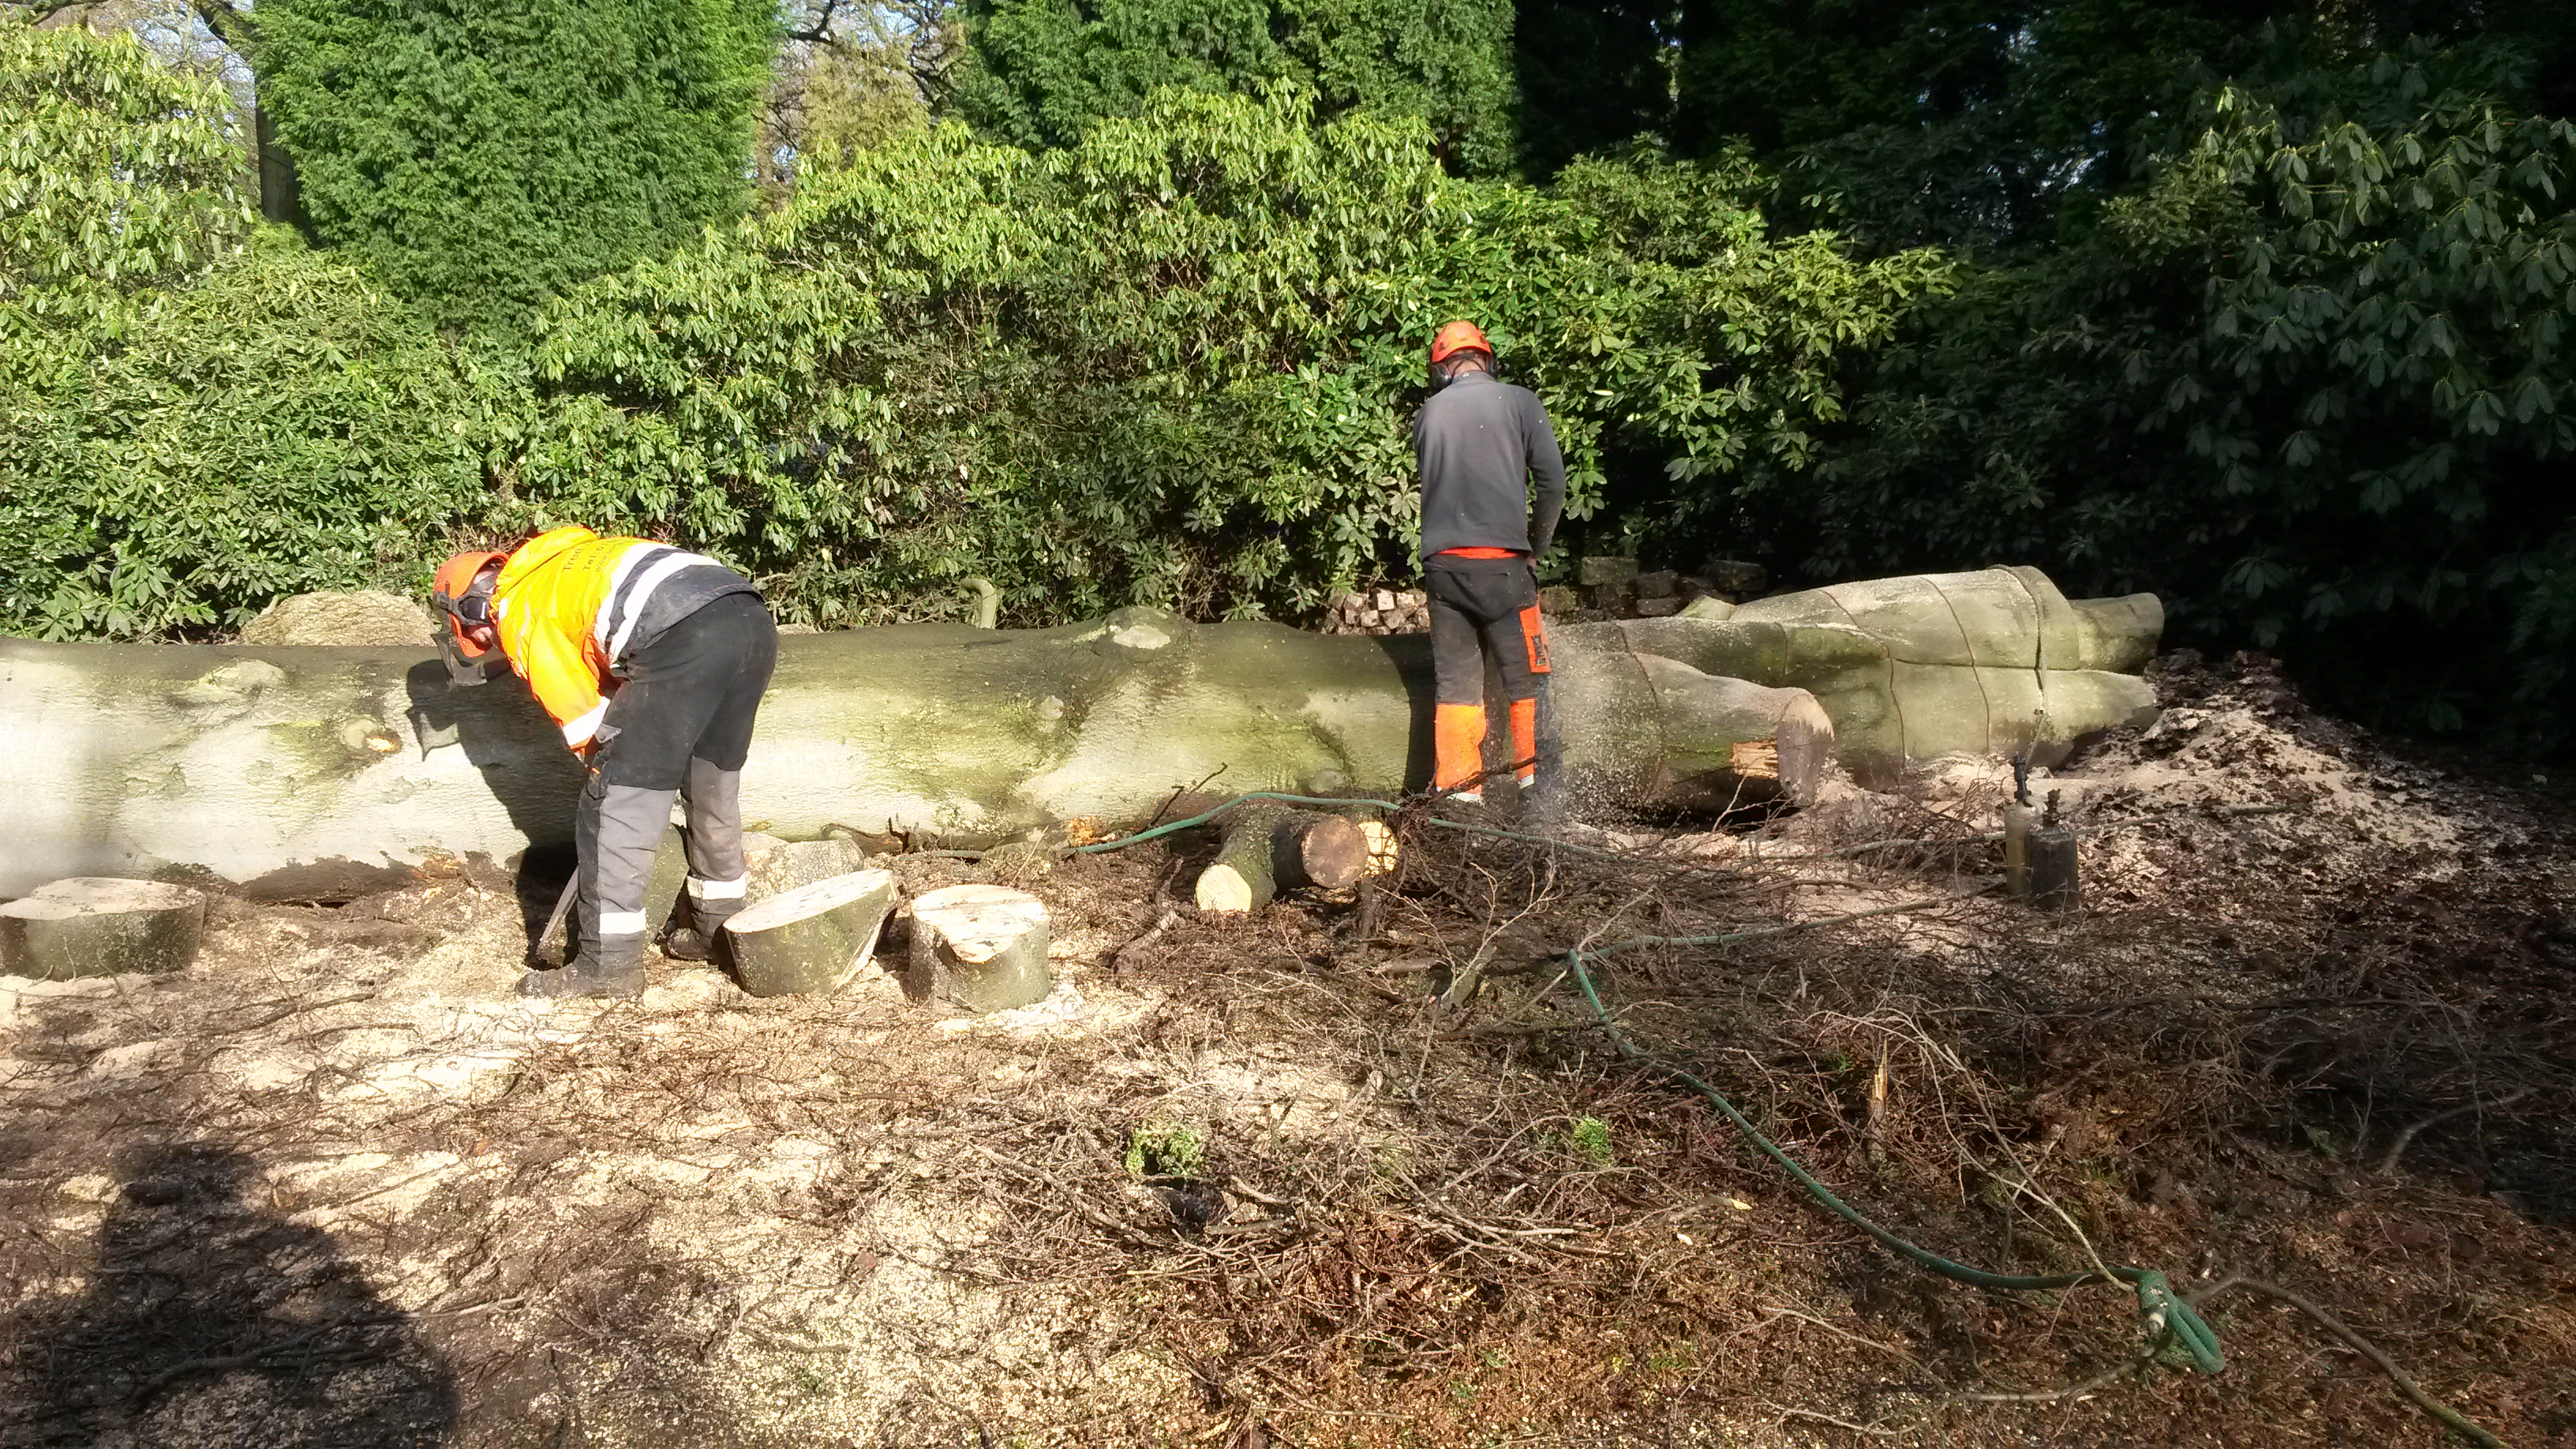 Diseased beech tree removal